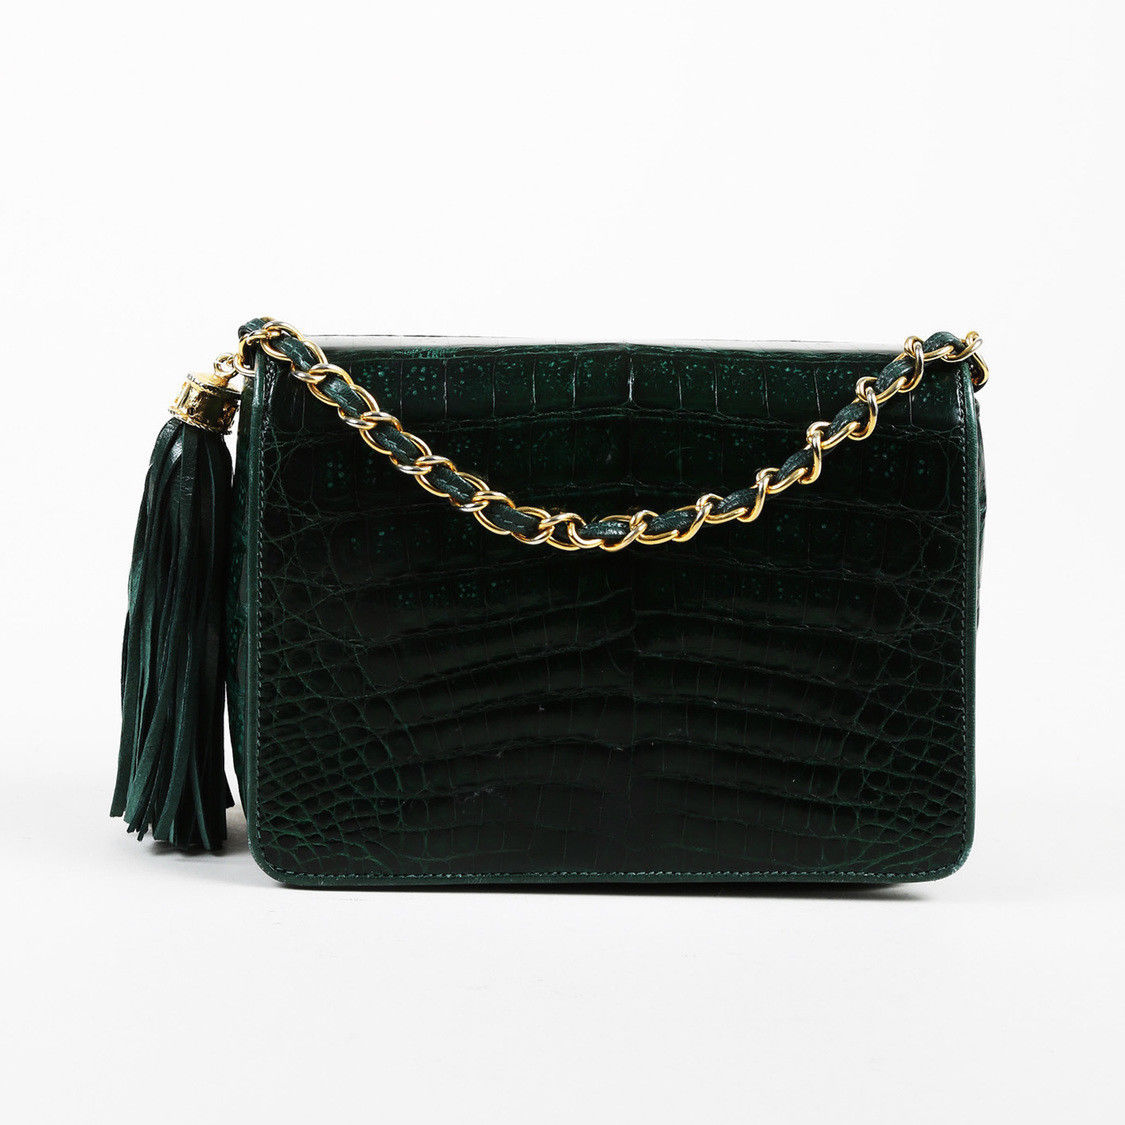 92a385ecccdcca VINTAGE Chanel 1986-1988 Green Crocodile Skin & Leather Tasseled Flap Bag -  $5,510.00